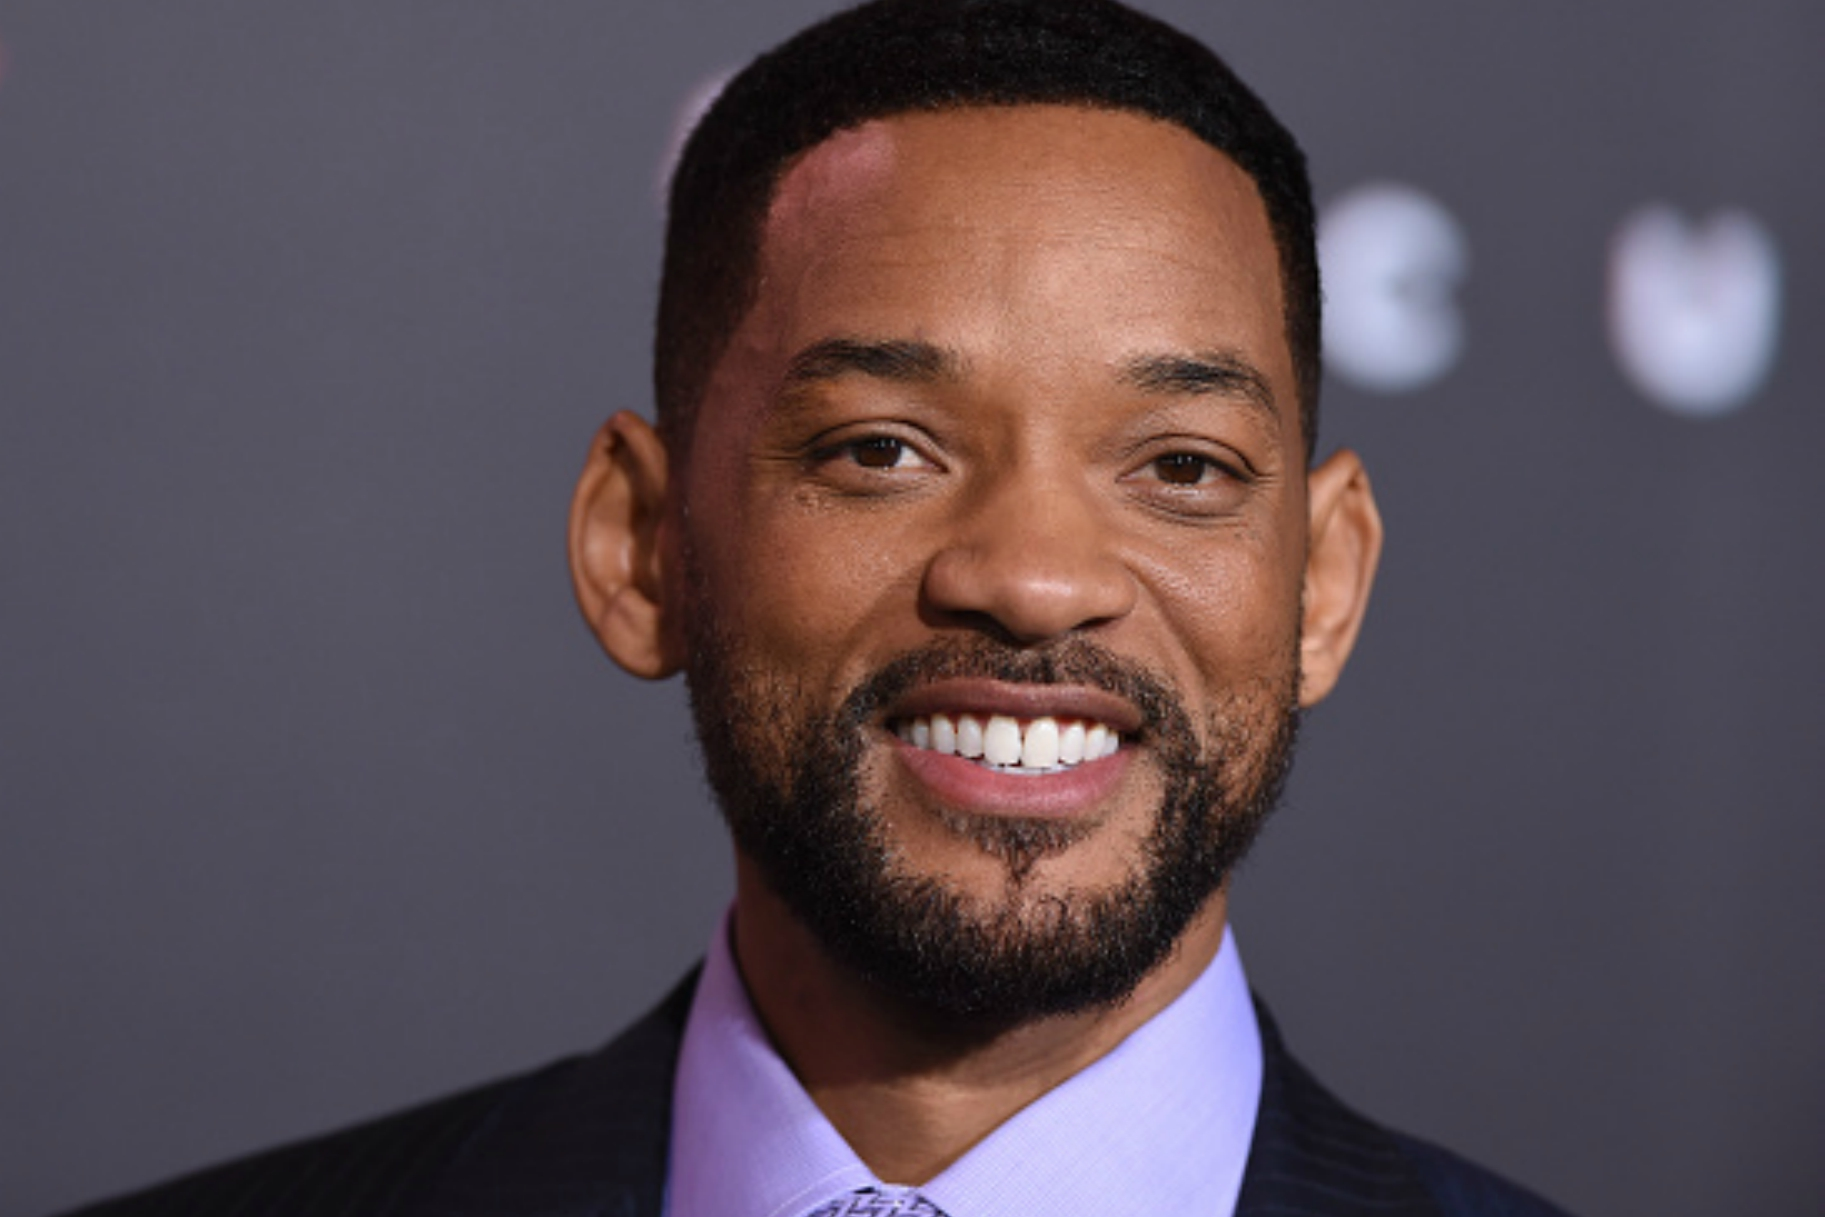 Will Smith Set to Star in Animated Film 'Spies in Disguise'